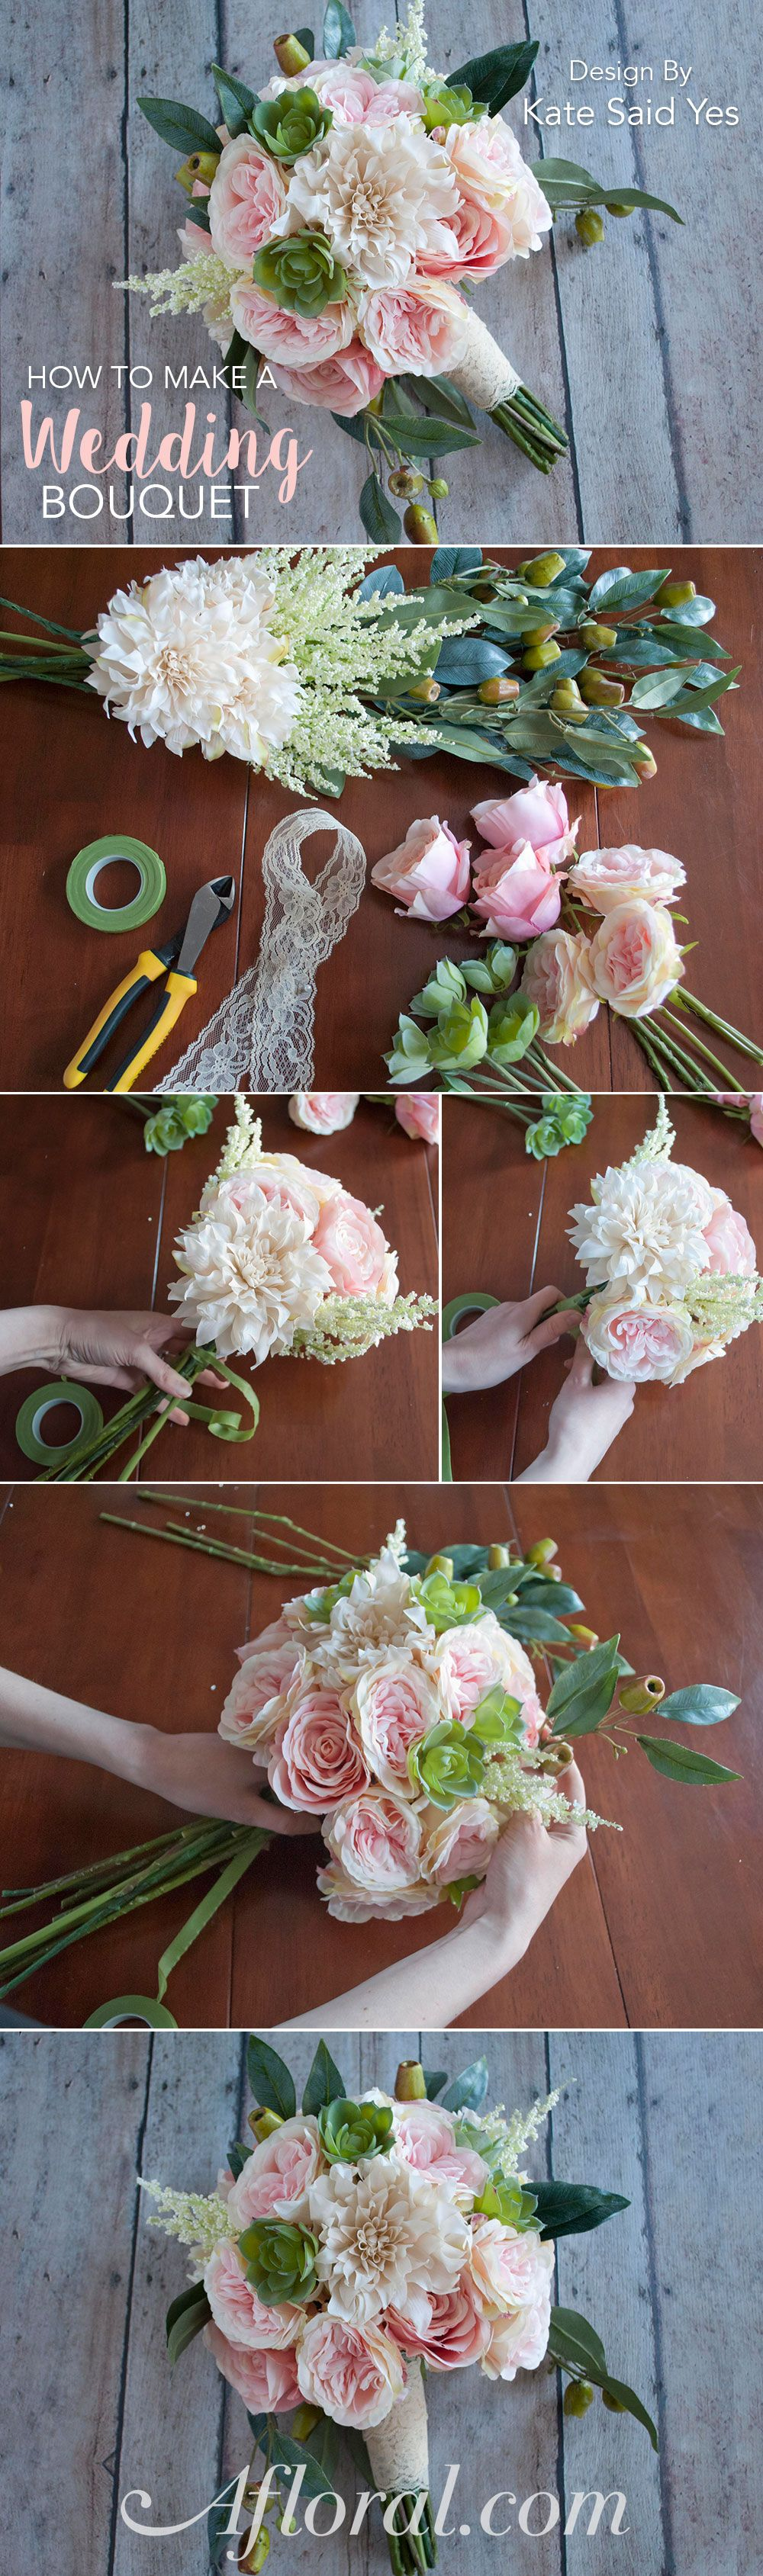 How To Make A Wedding Bouquet With Silk Flowers From Http Www